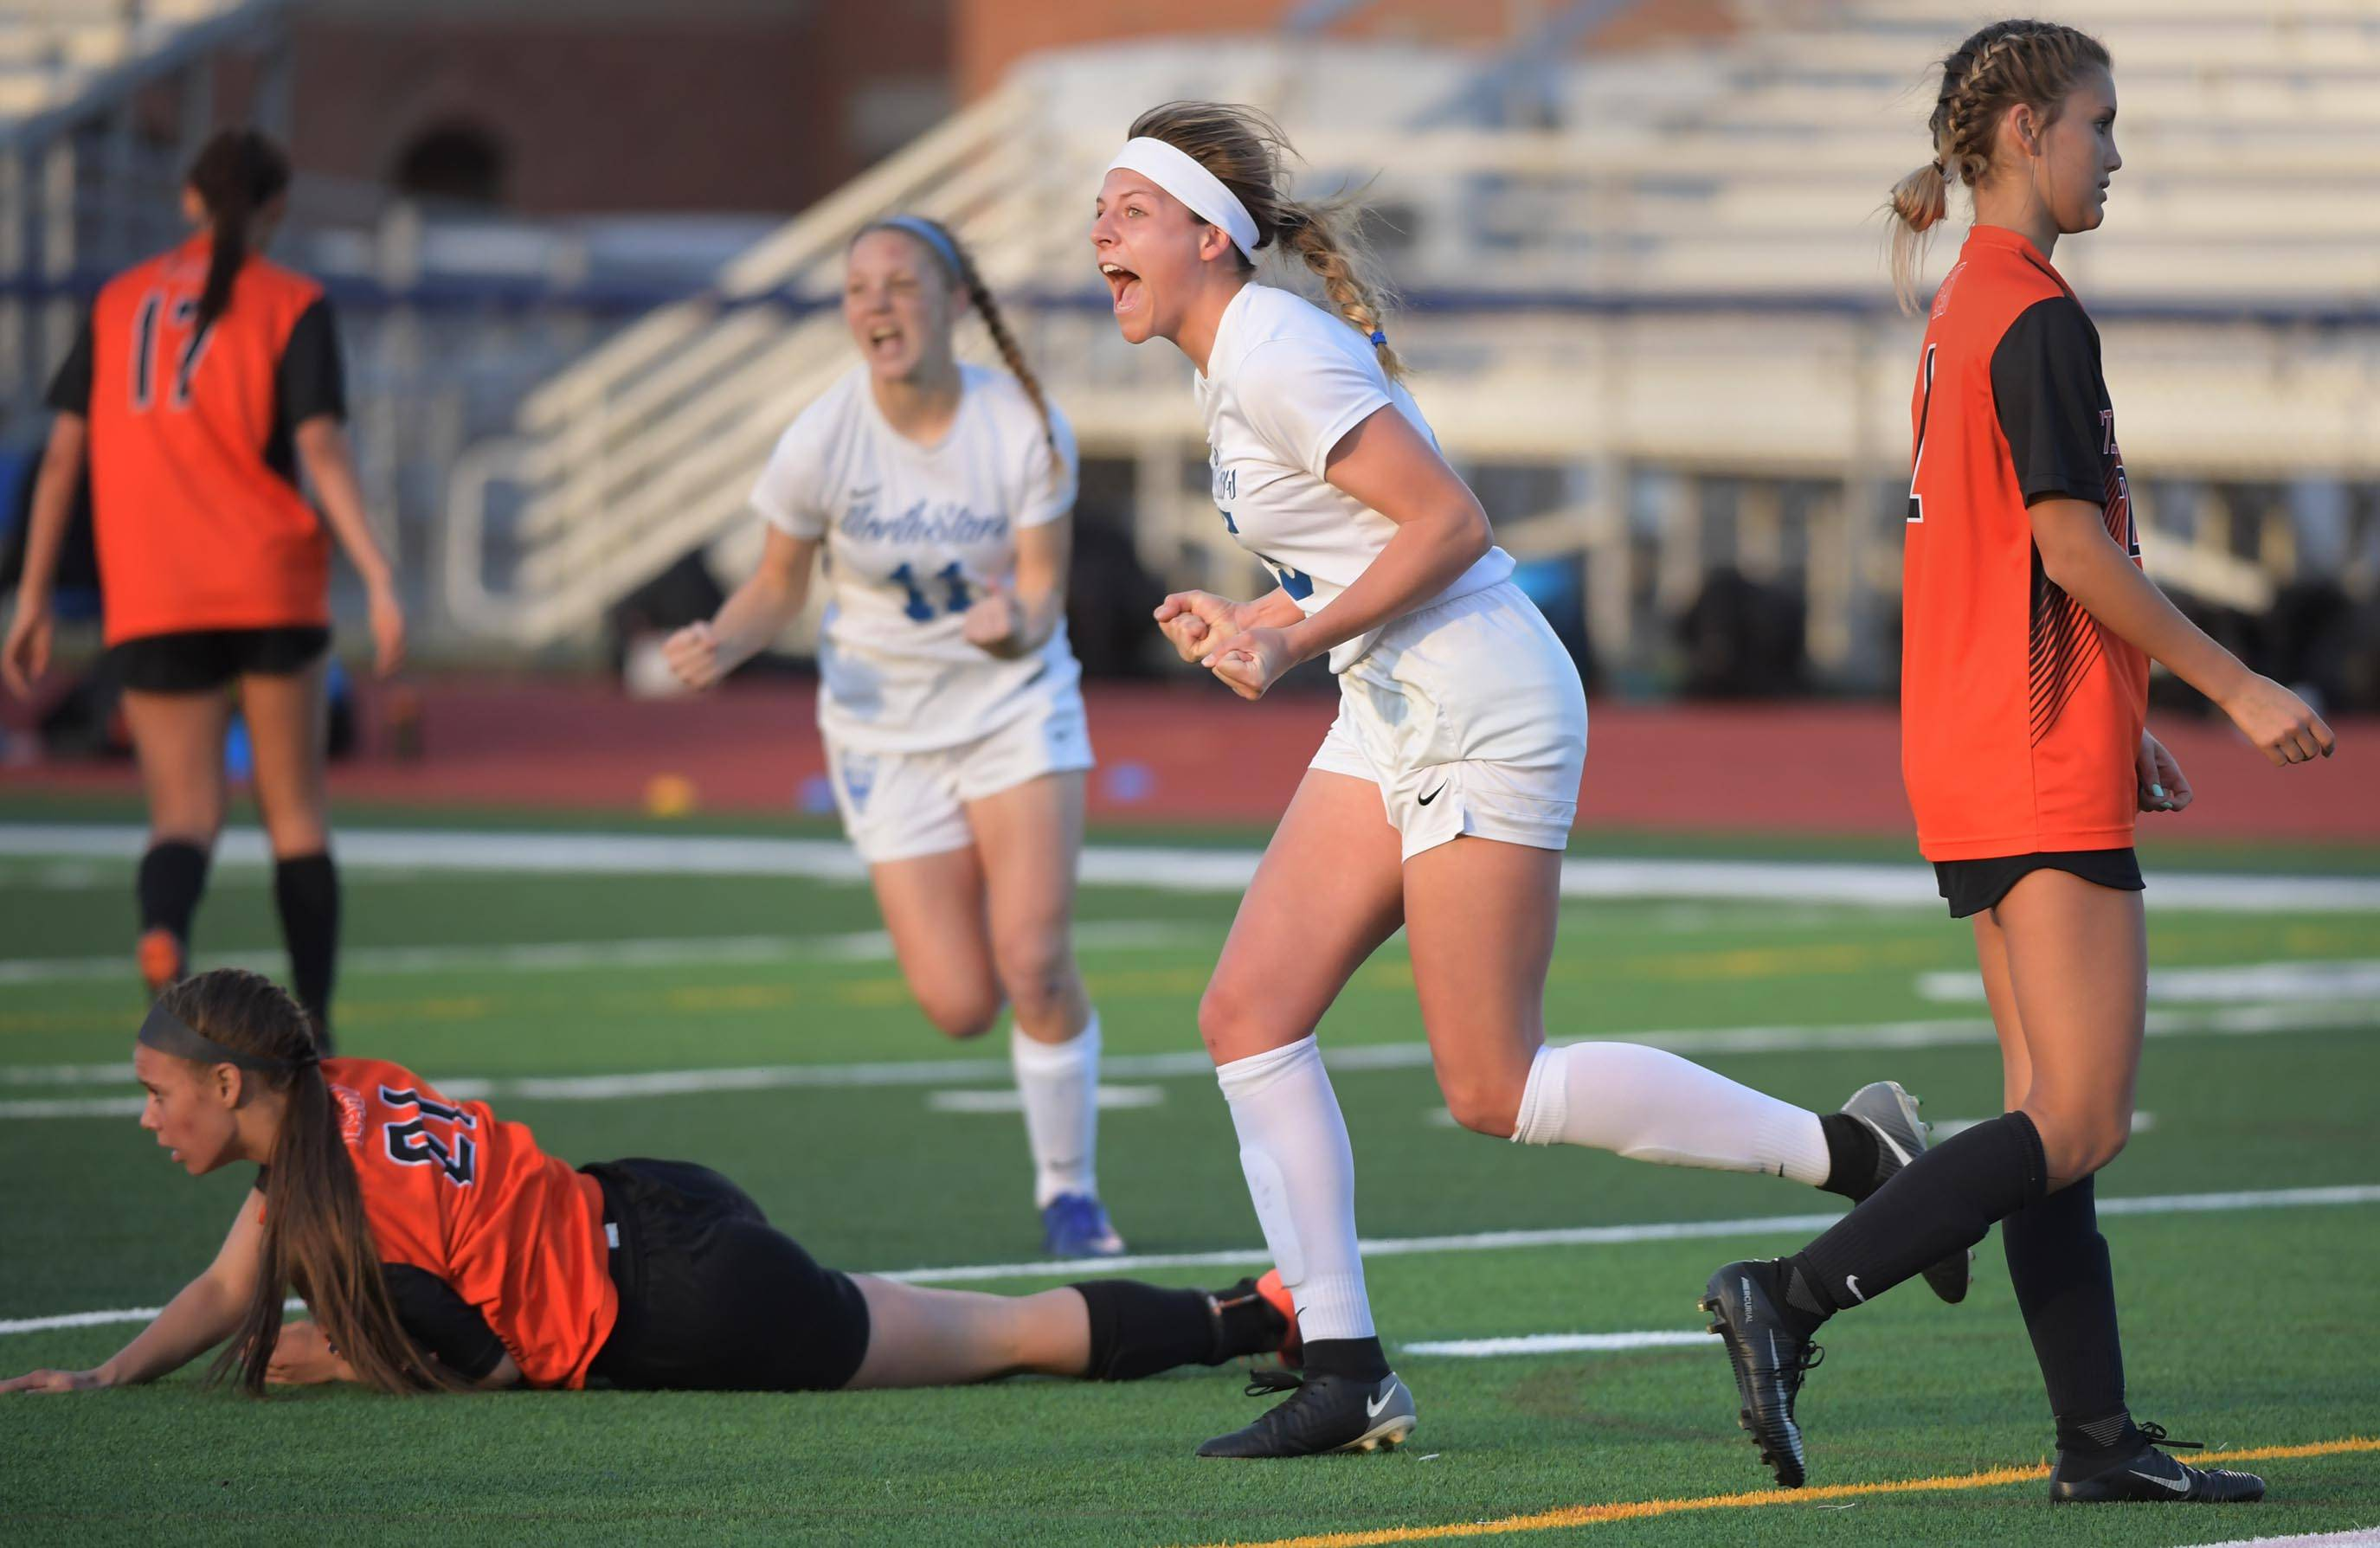 St. Charles North's Gia Wahlberg celebrates her first goal against St. Charles East in a girls soccer game at North High School Tuesday.